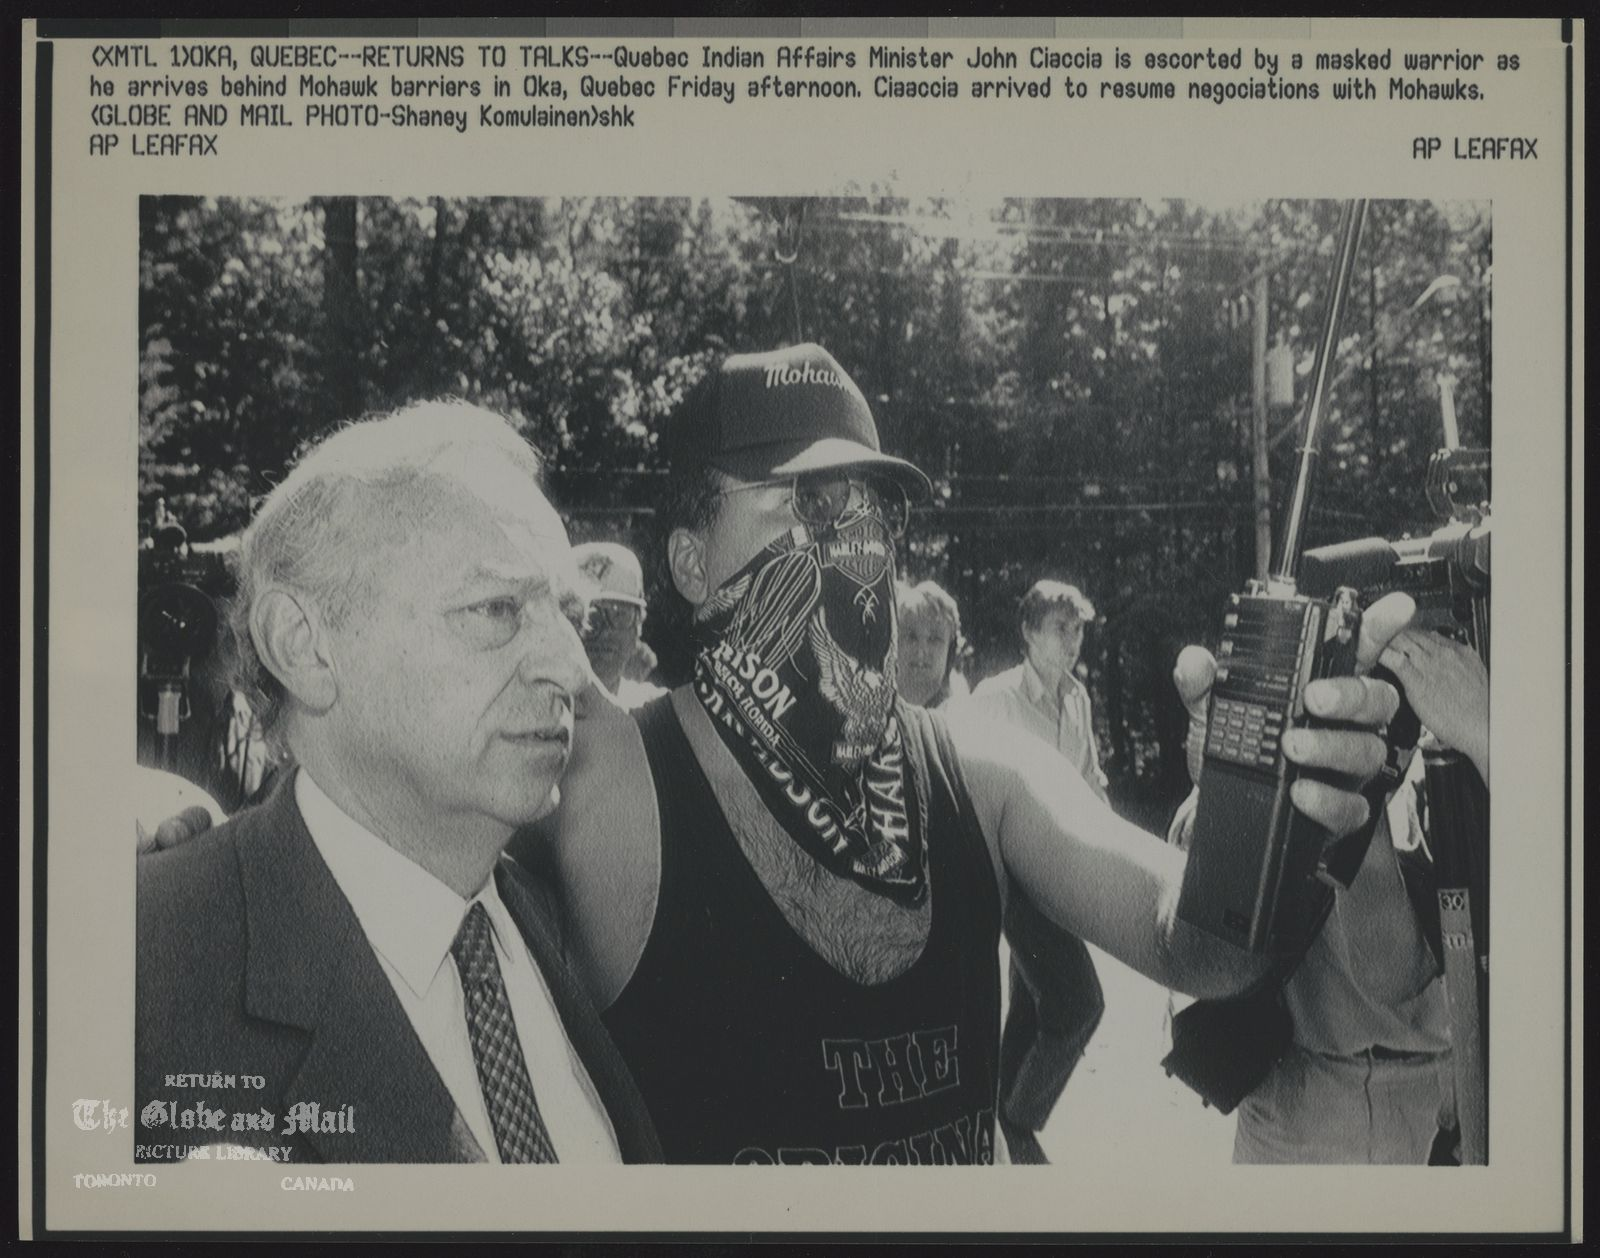 INDIANS CANADA MOHAWKS (XMTL 1) OKA, QUEBEC--RETURNS TO TALKS--Quebec Indian Affairs Minister John Ciaccia is escorted by a masked warrior as he arrives behind Mohawk barriers in Oka, Quebec Friday afternoon. Ciaccia arrived to resume negotiations with Mohawks. (Globe and Mail Photo -- Shaney Komulainen) shk